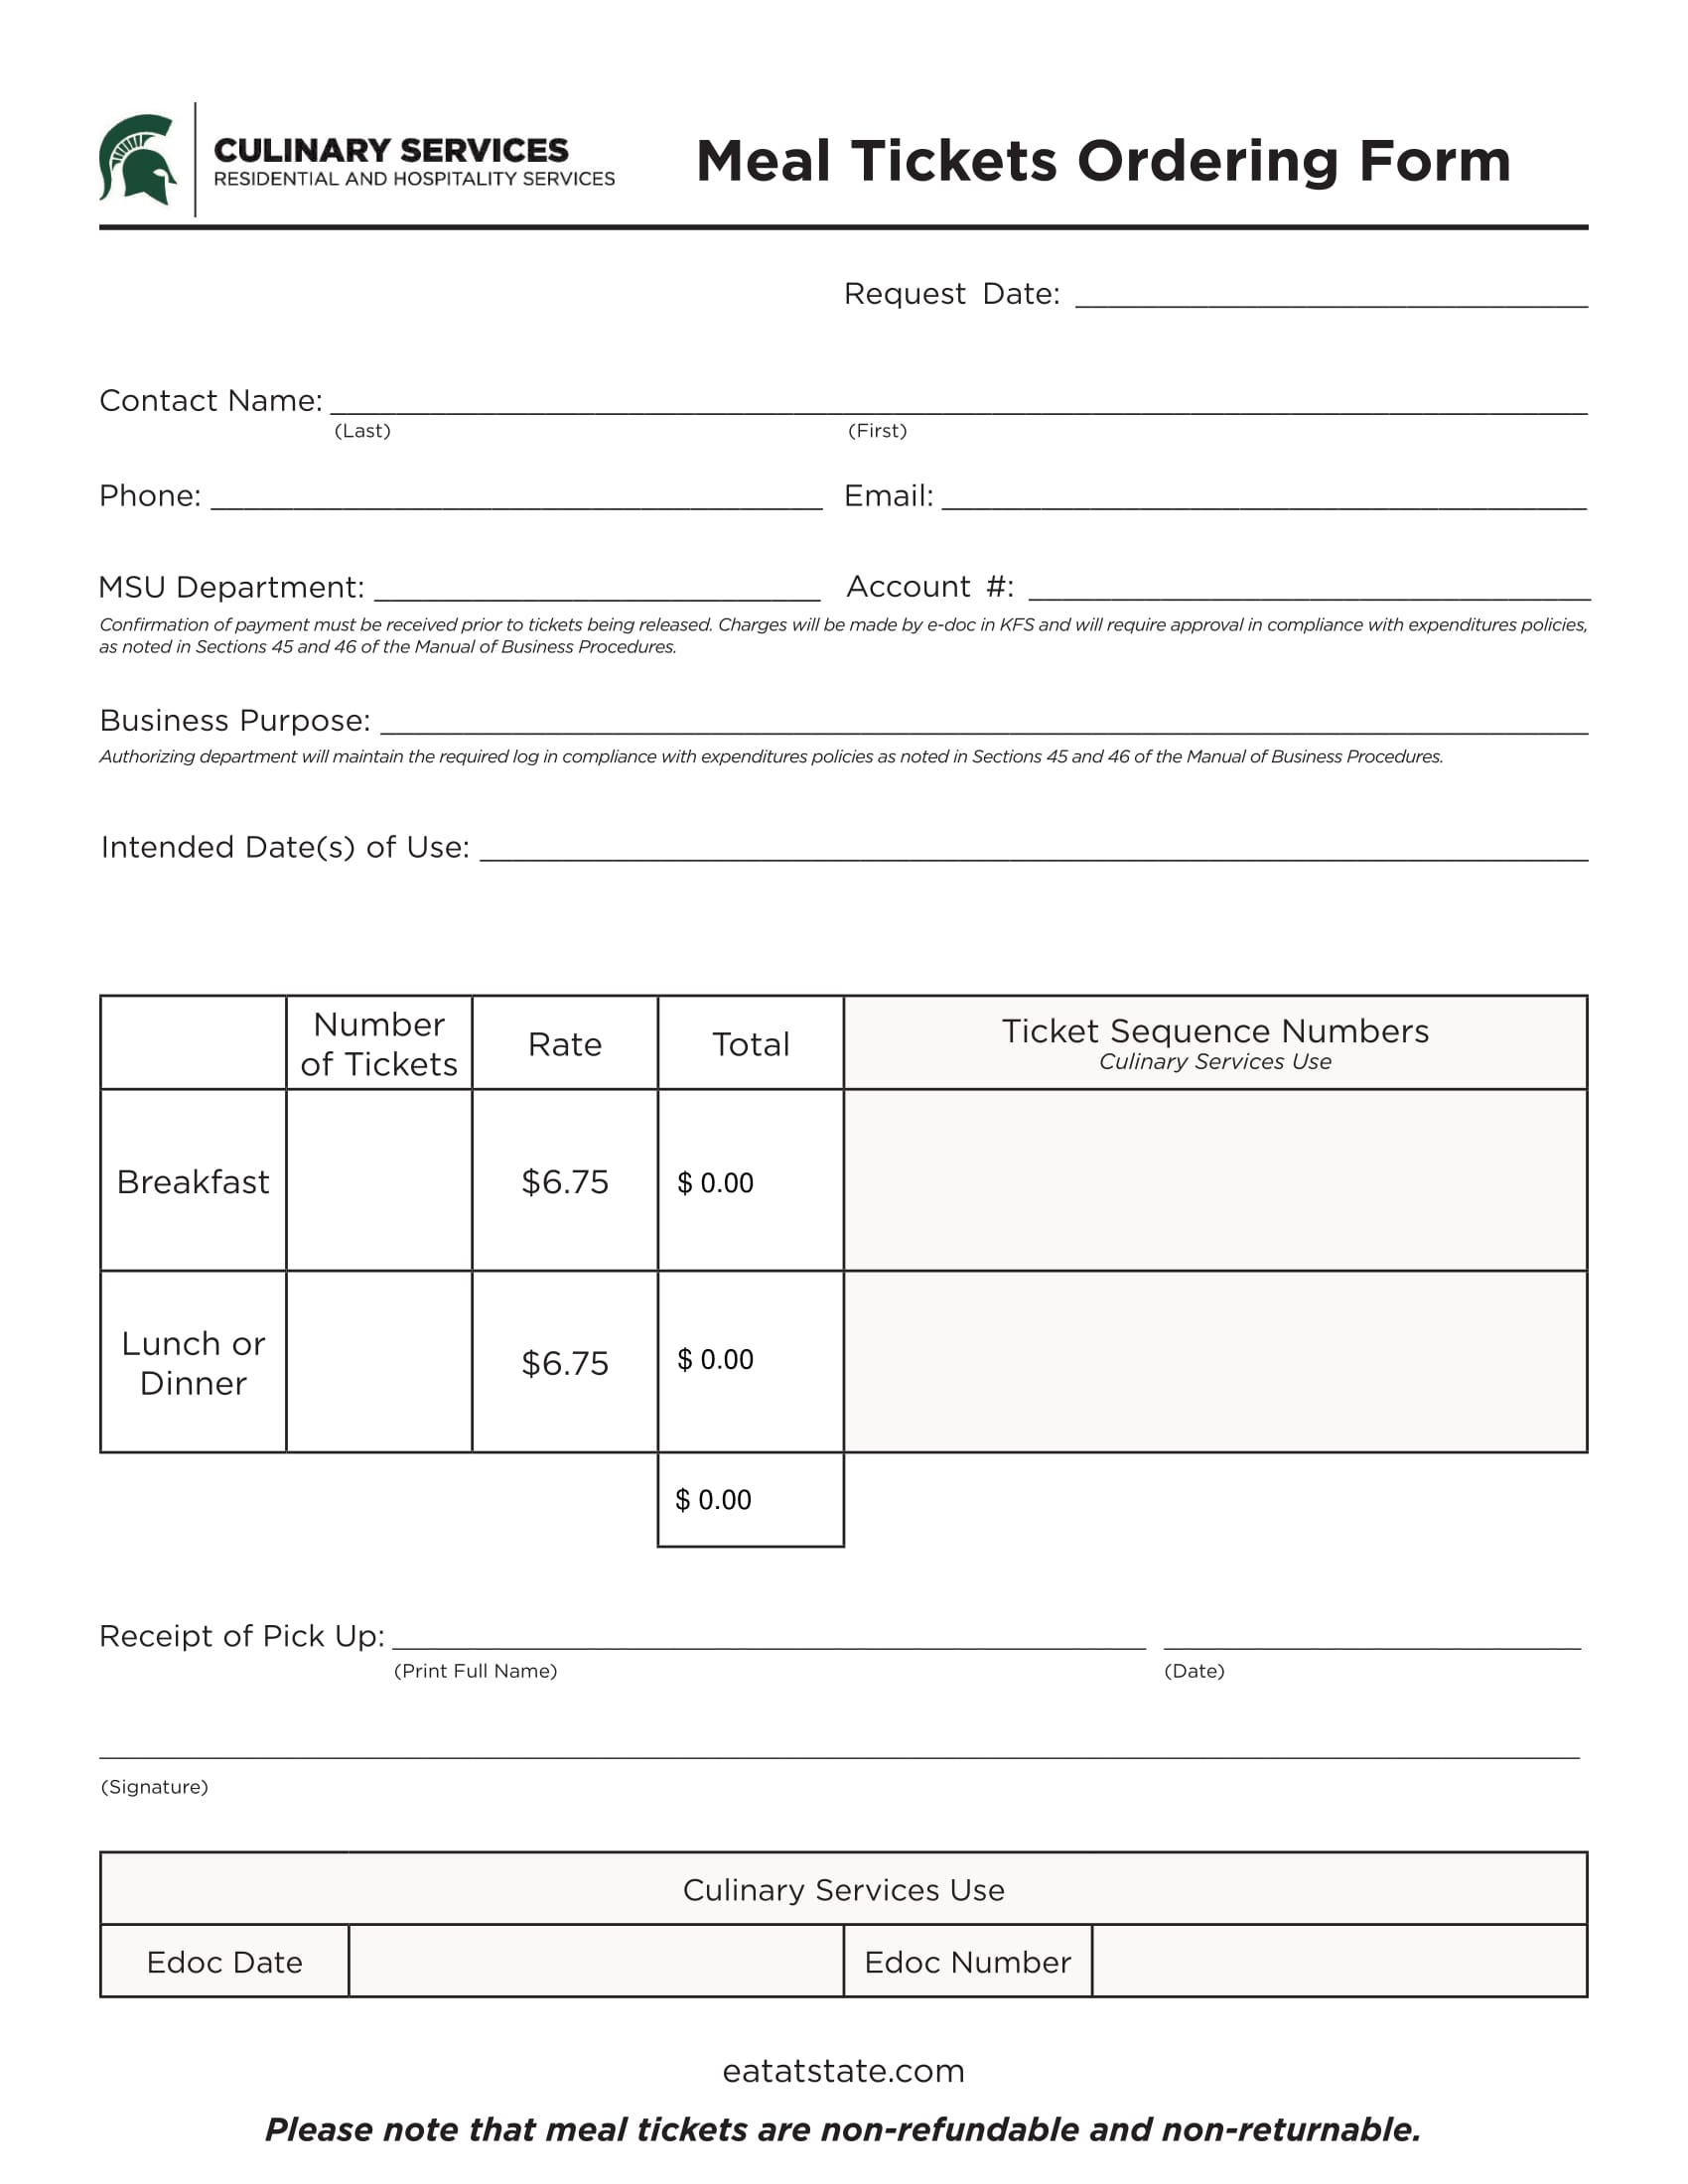 meal ticket order form 2